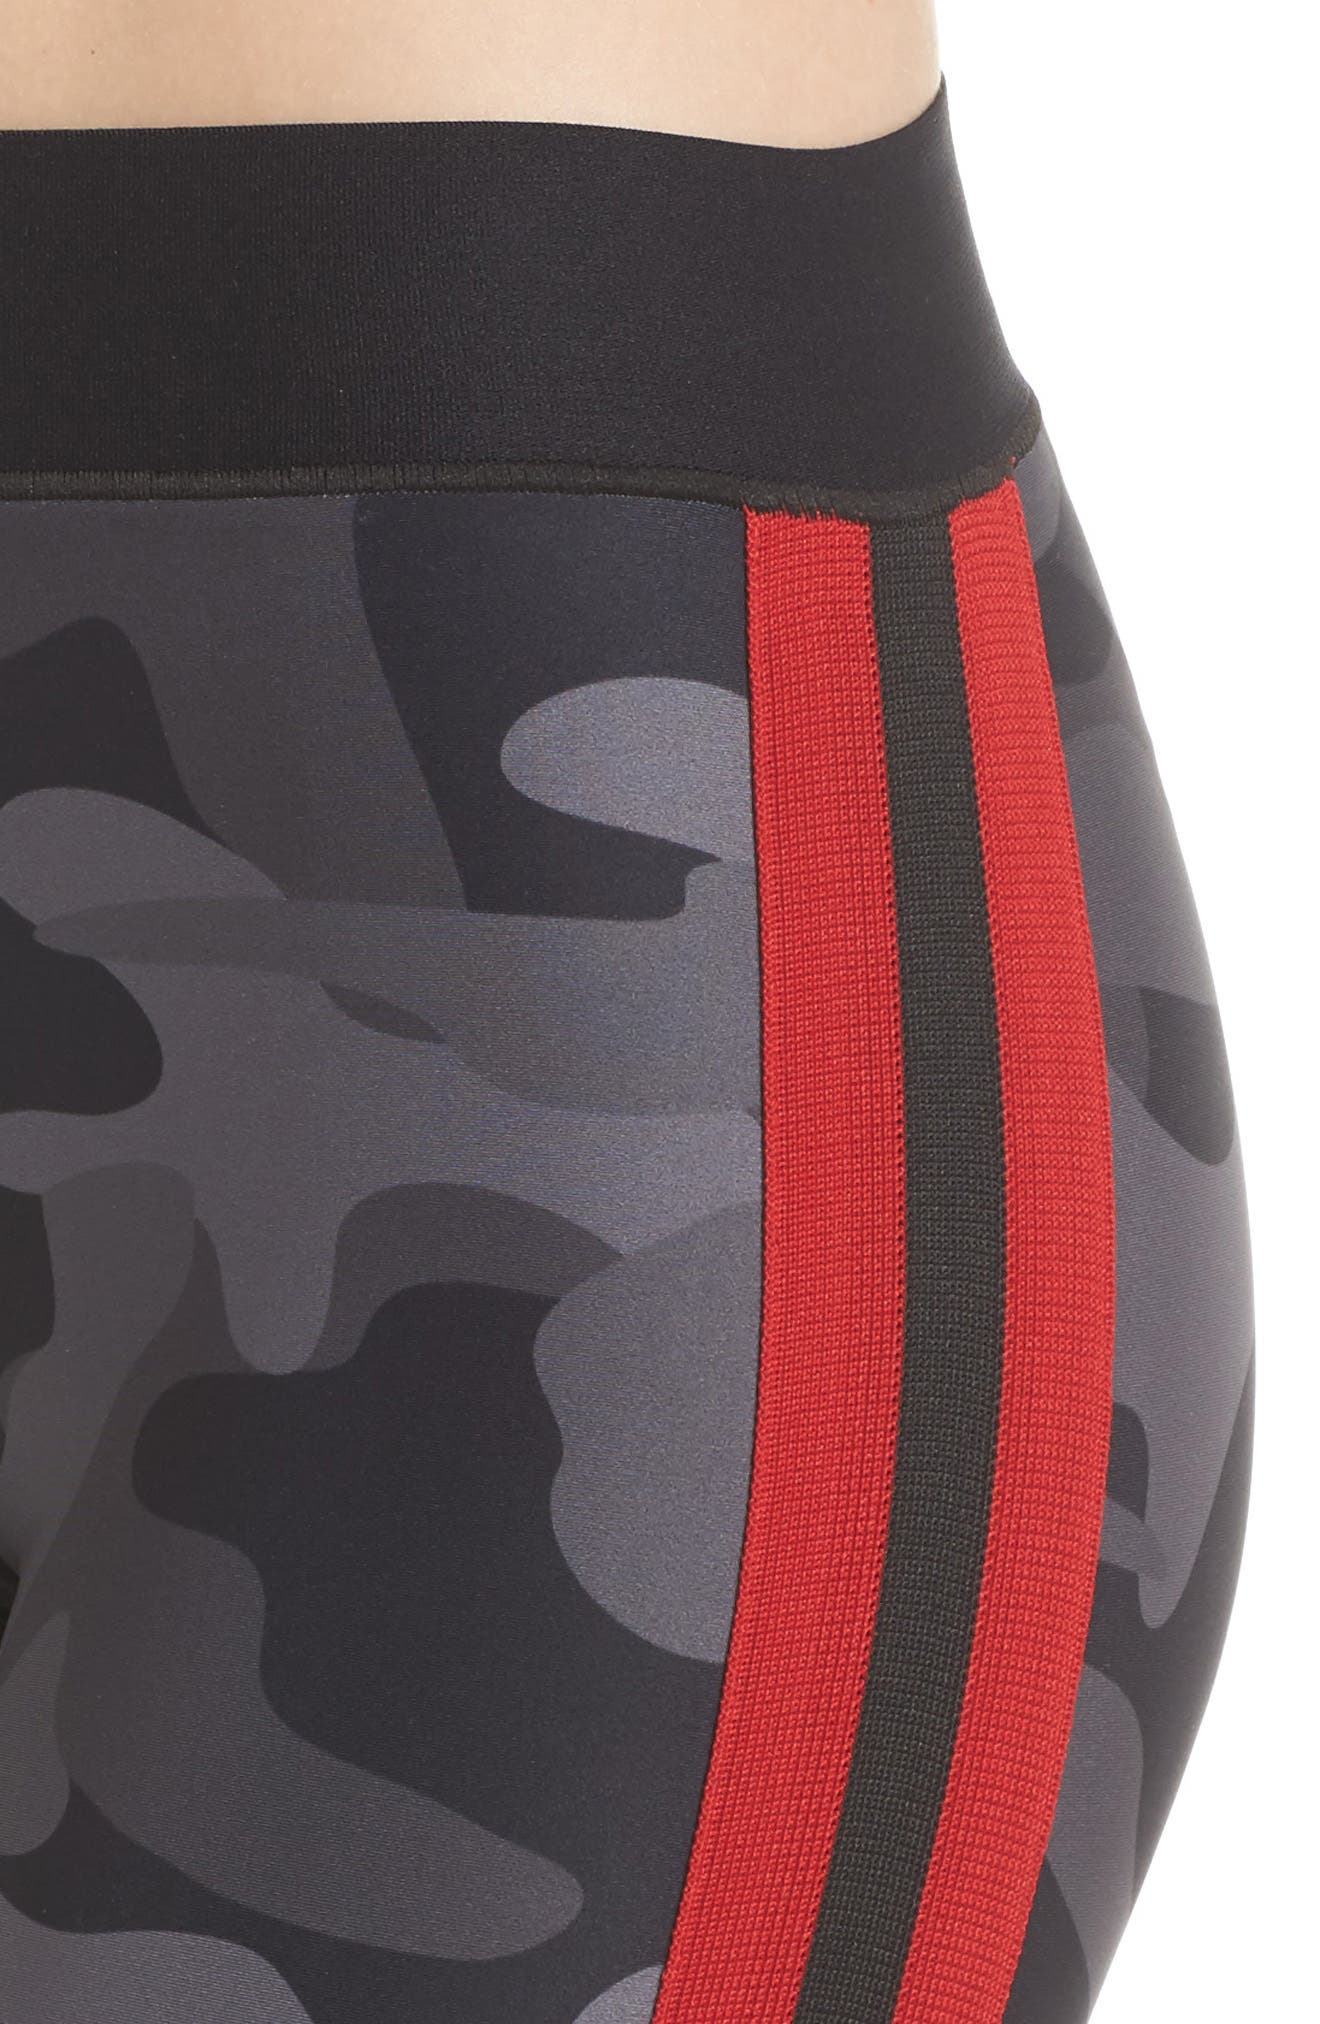 Ultra Camo Collegiate Leggings,                             Alternate thumbnail 4, color,                             005